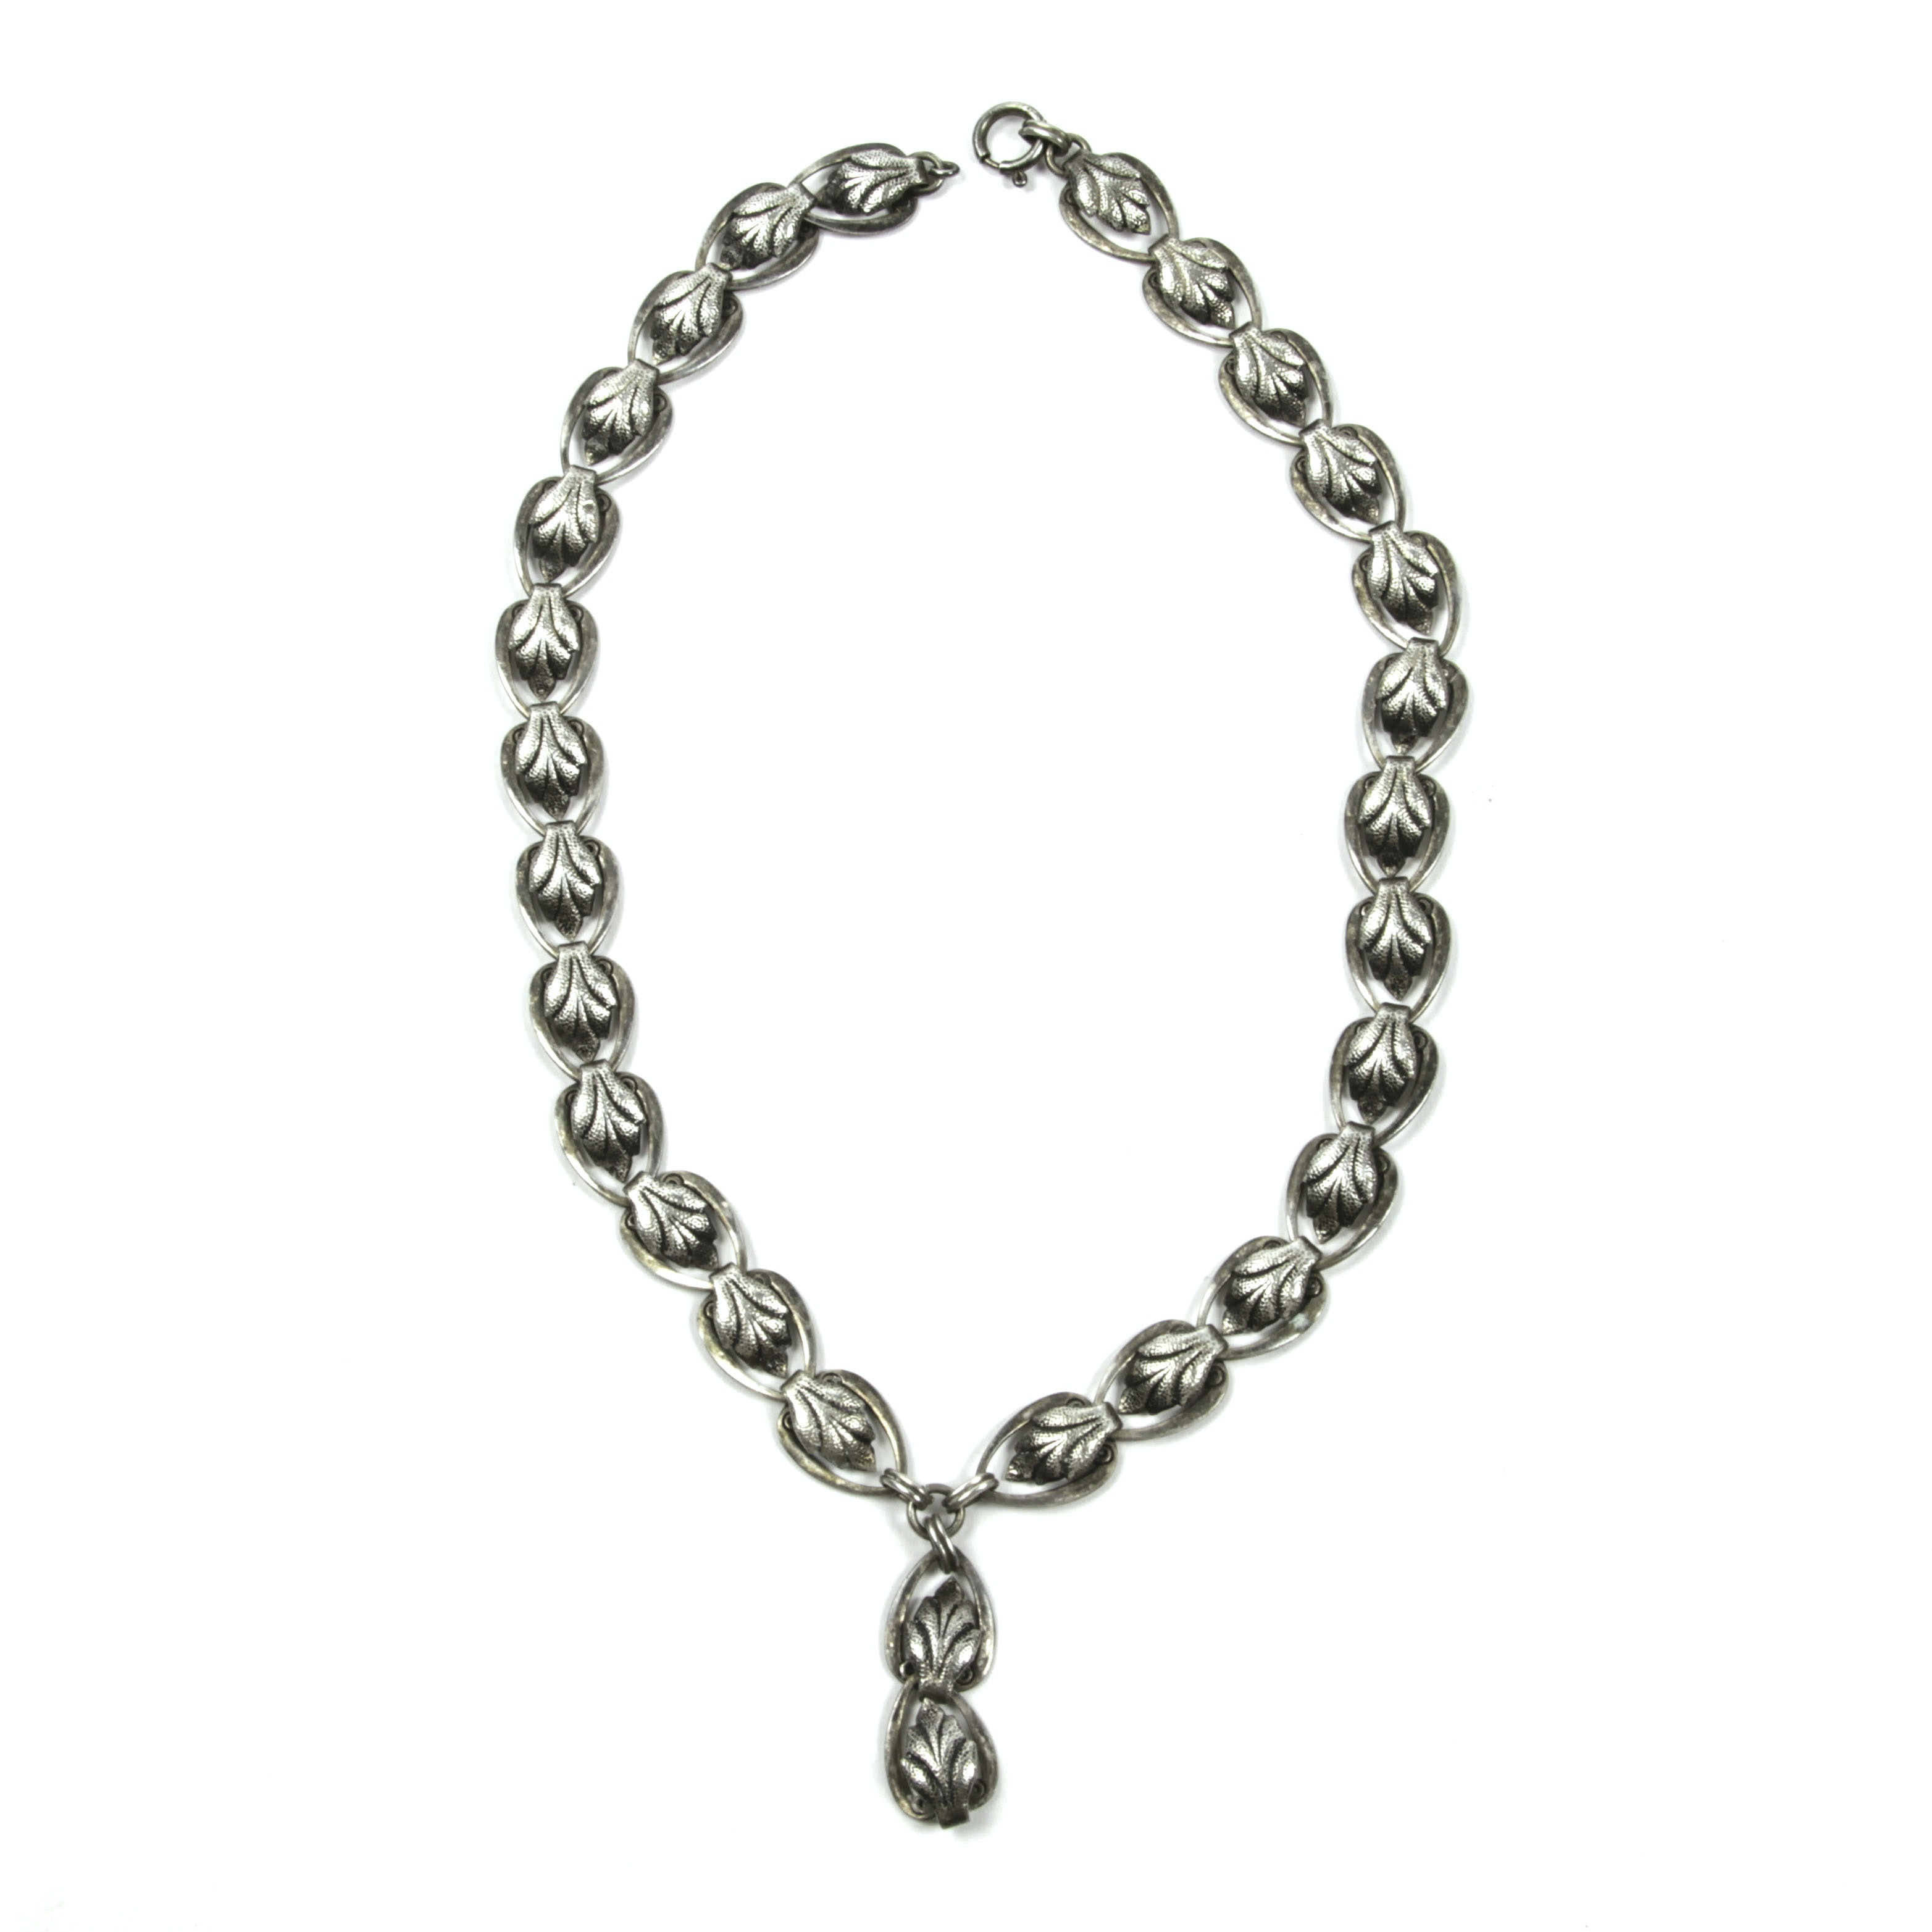 Vintage Small-Sized Silver Necklace